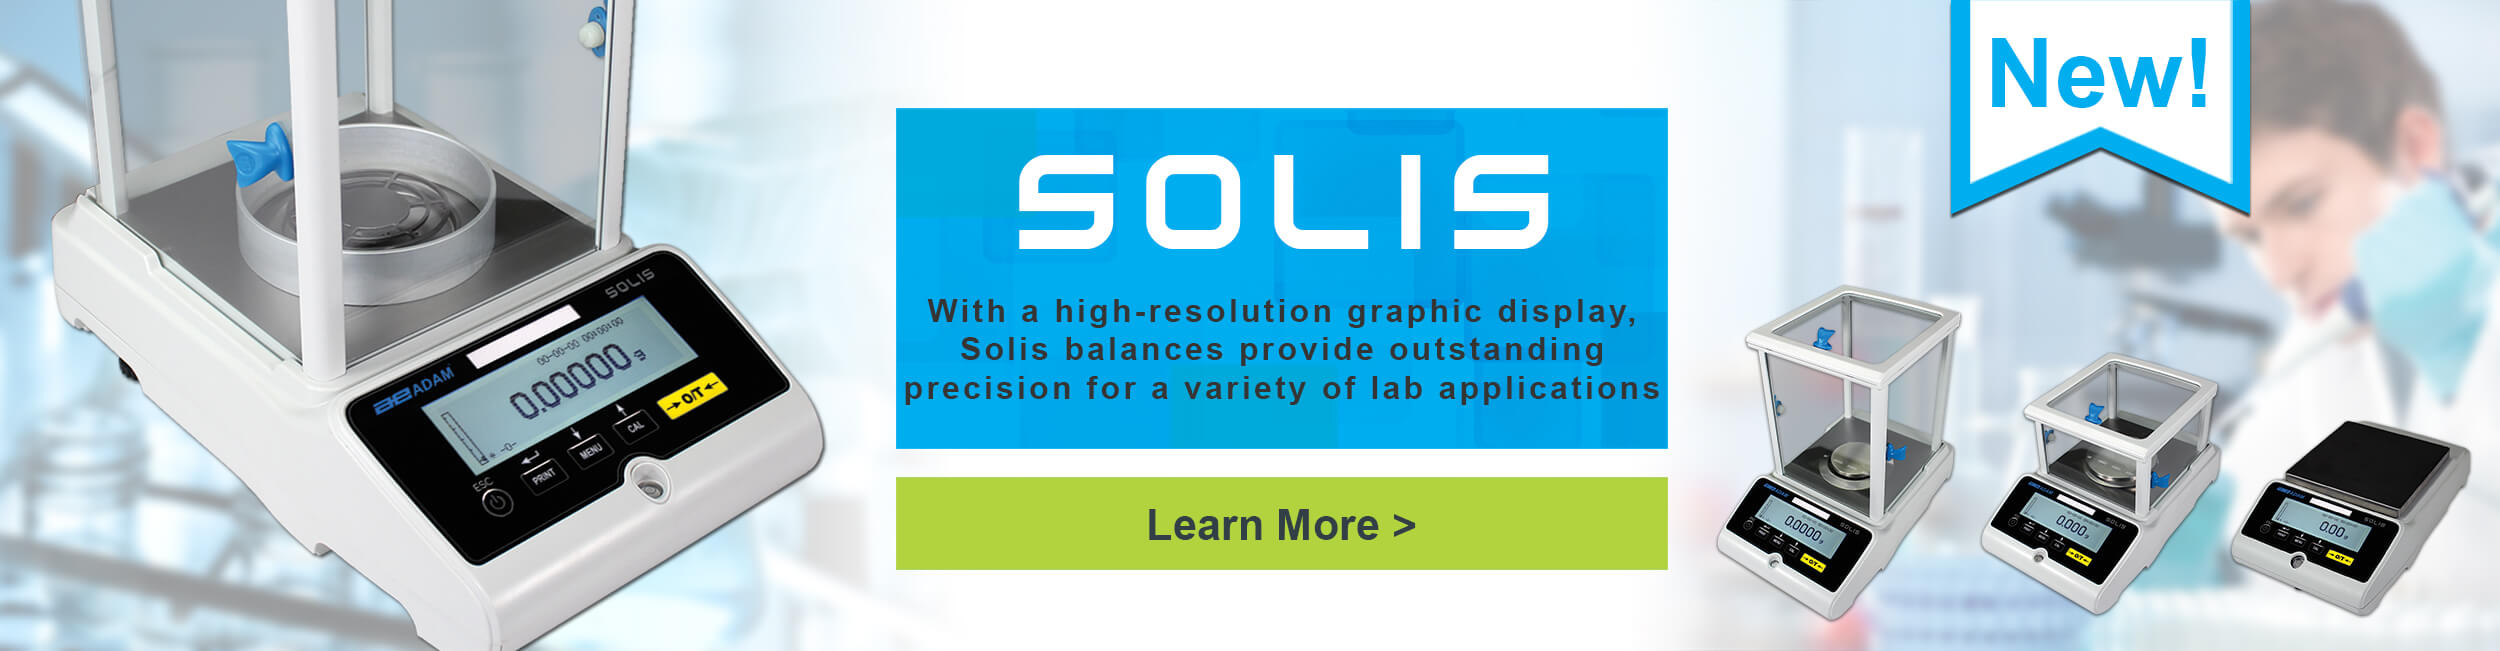 Solis - With a high-resolution graphic display, Solis balances provide outstanding precision for a variety of lab applications.